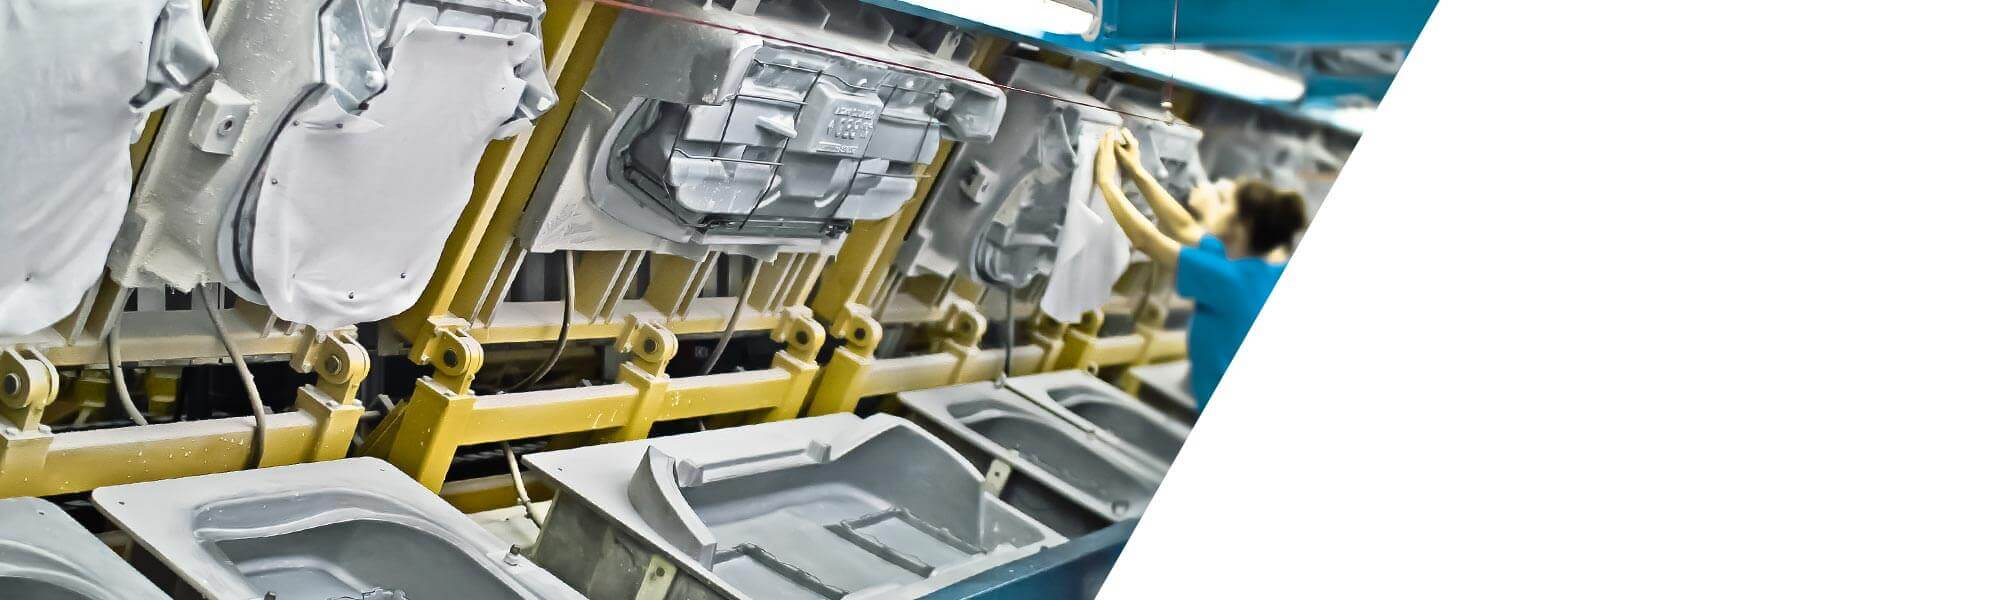 Modular systems for the manufacture of moulded foam products